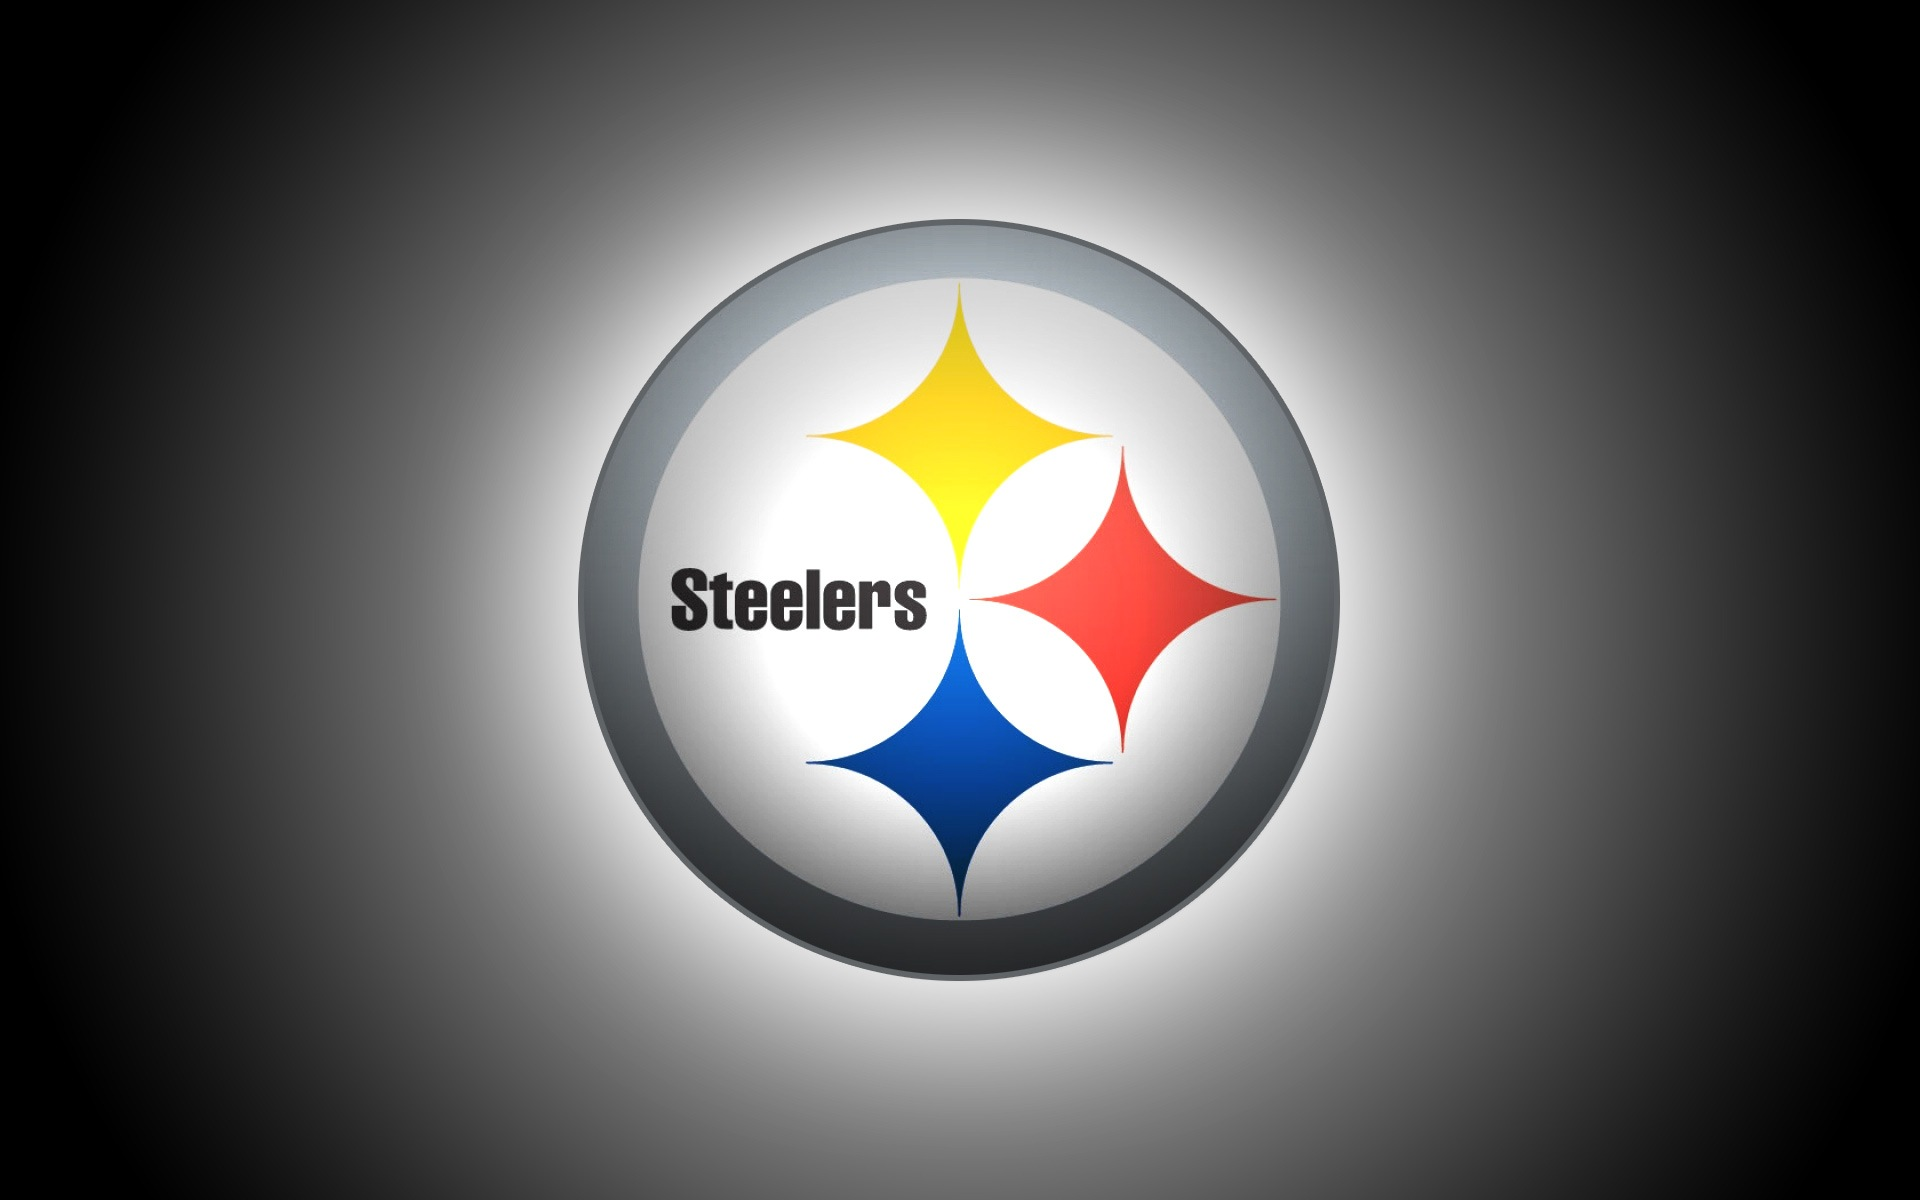 Steelers Wallpaper 14619 1920x1200 px